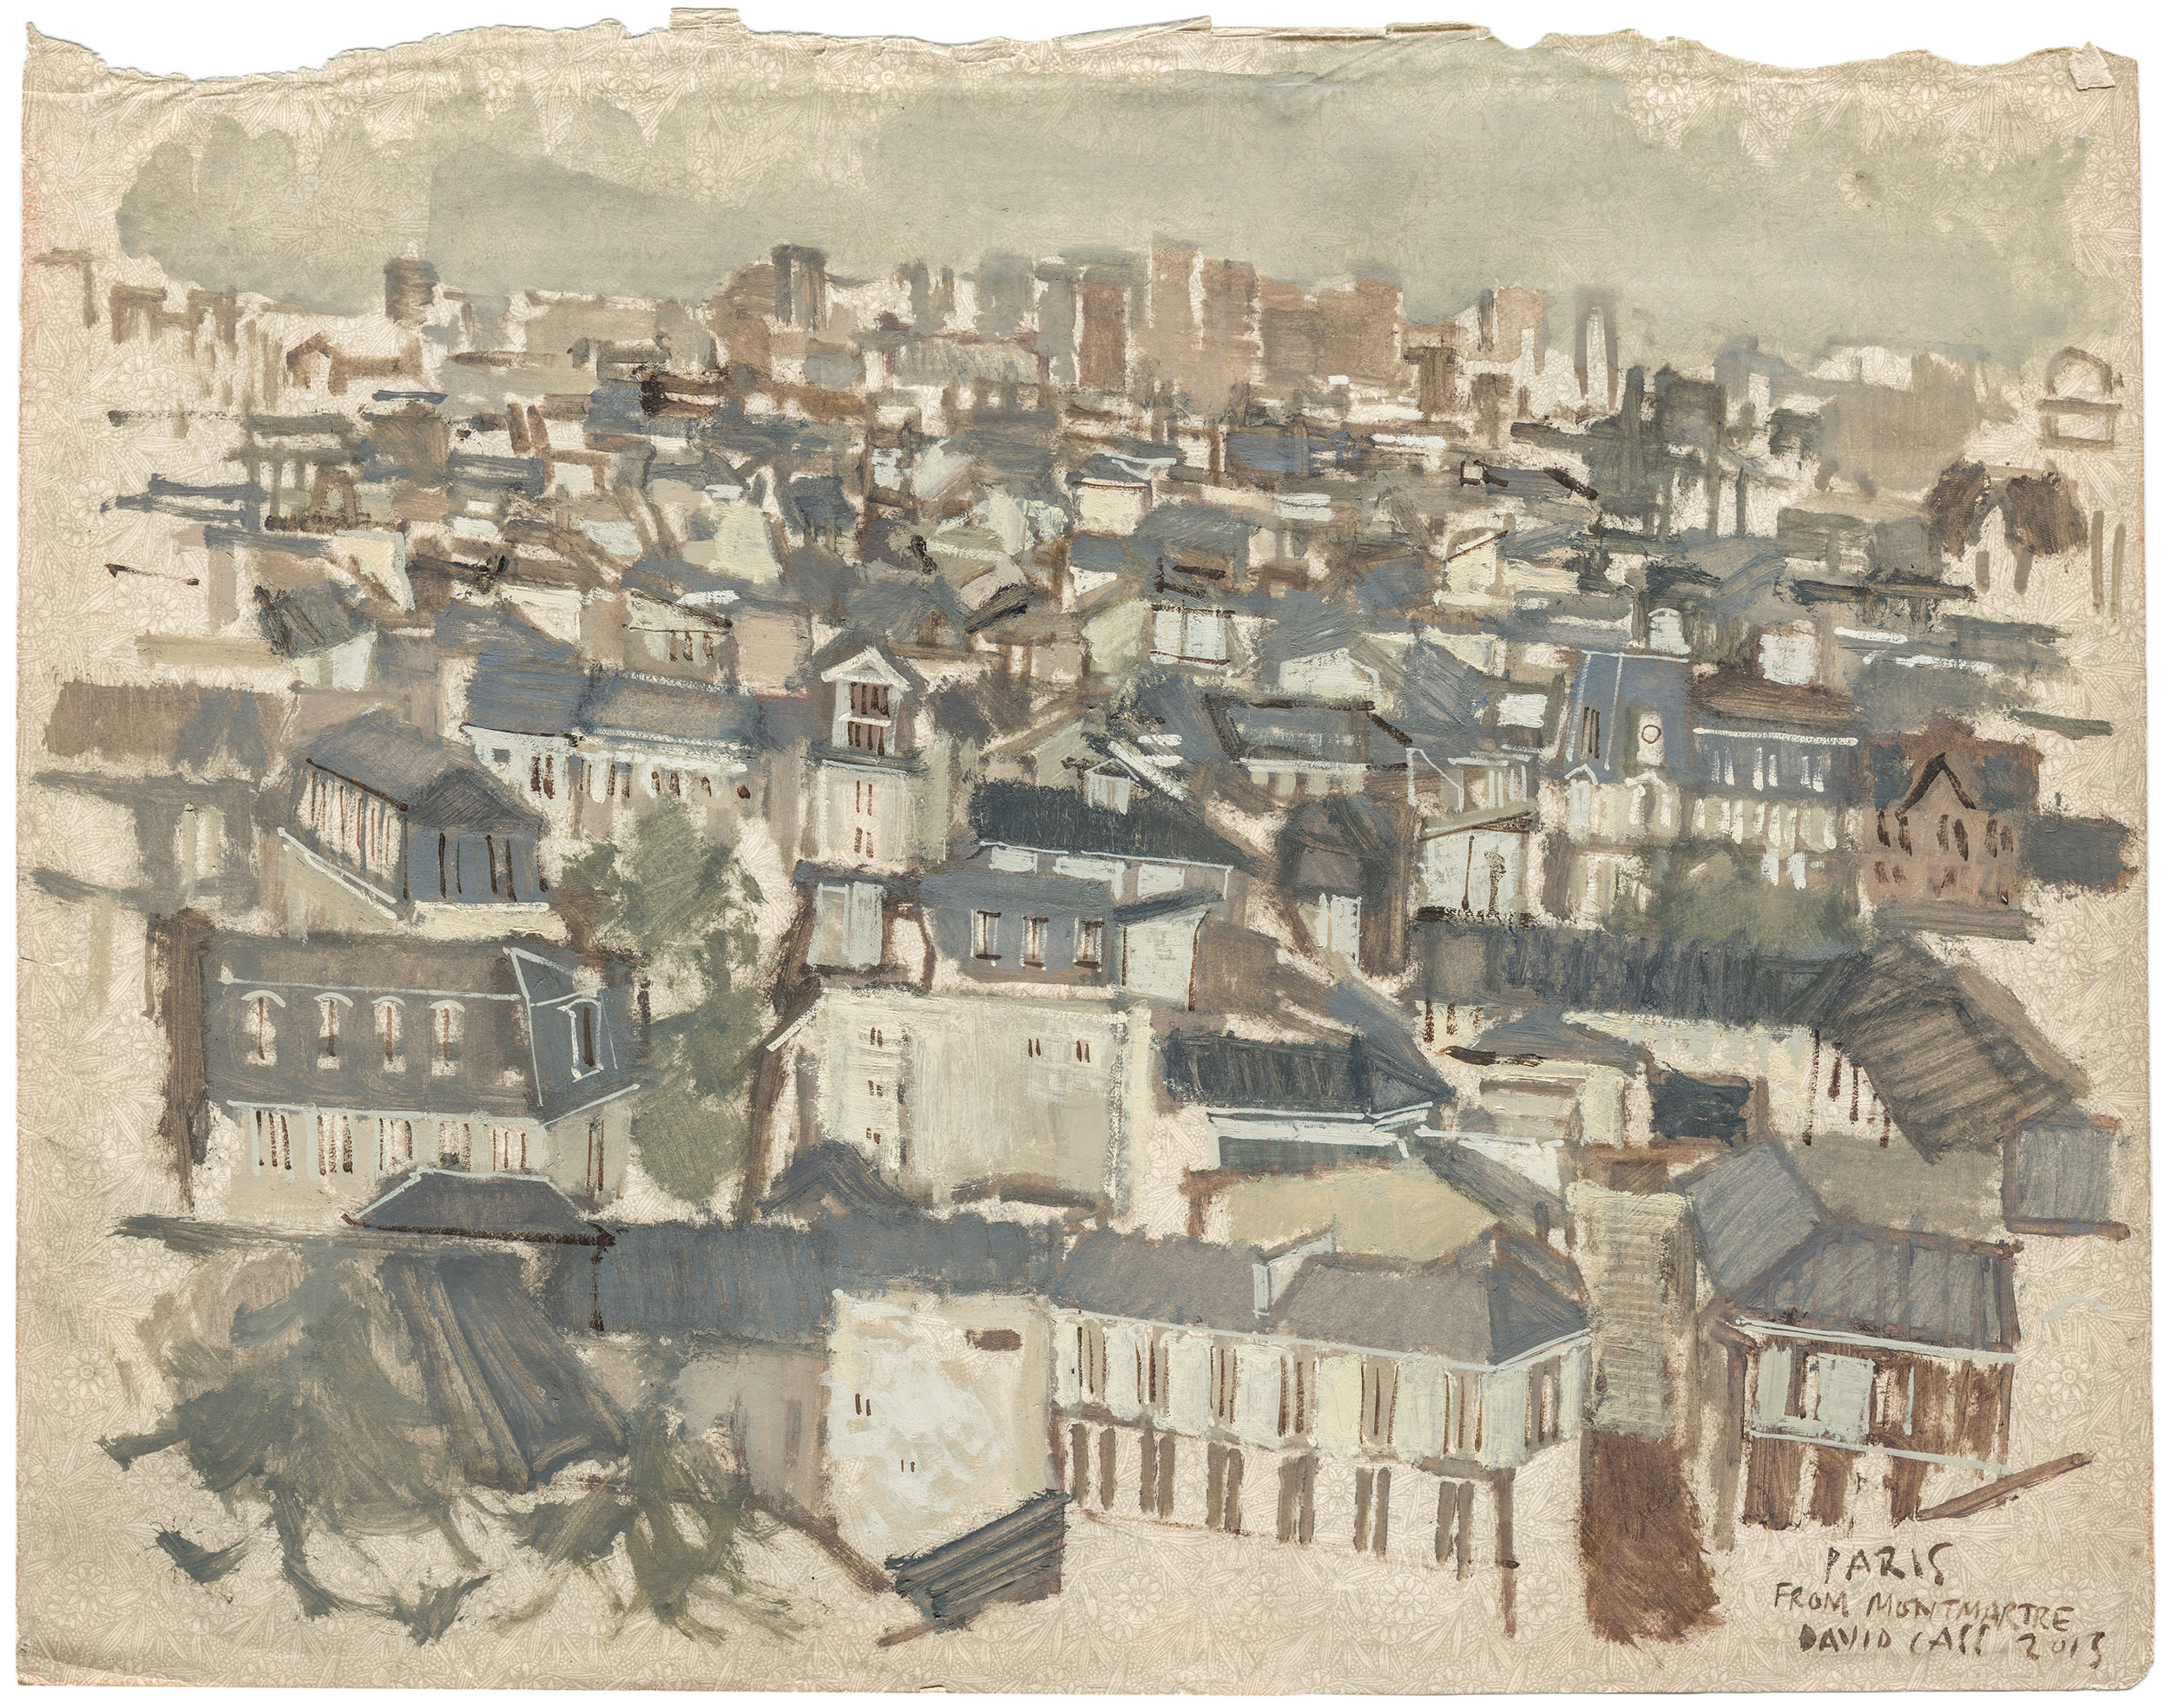 Paris  from Montmartre I Gouache + watercolour on antique A4 paper  Part of a series of Paris street studies started on location & completed in the studio